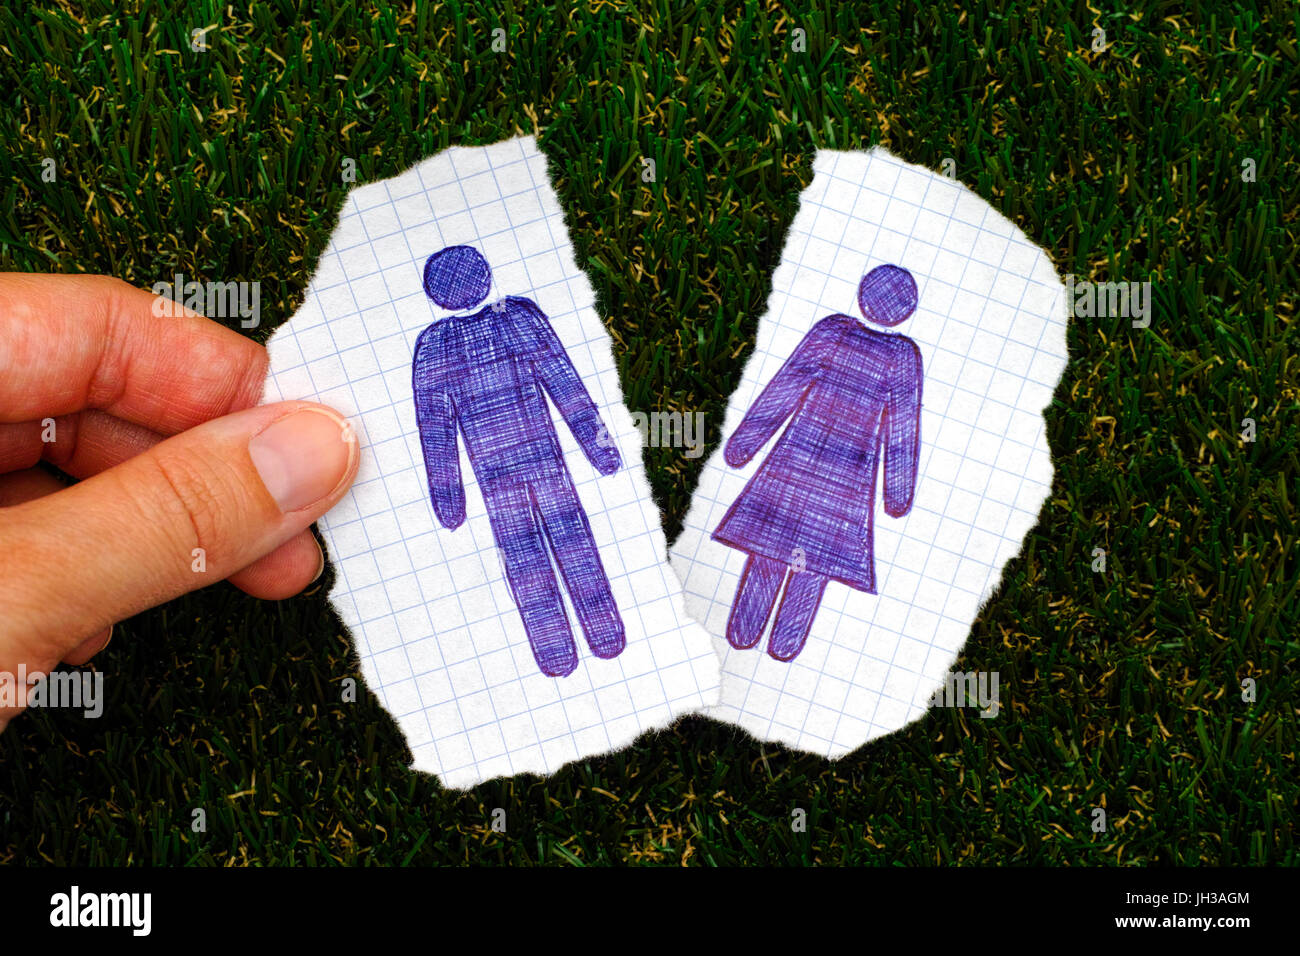 Woman fingers holding piece of paper with hand drawn man figure. Other piece of paper with drawn woman figure on - Stock Image